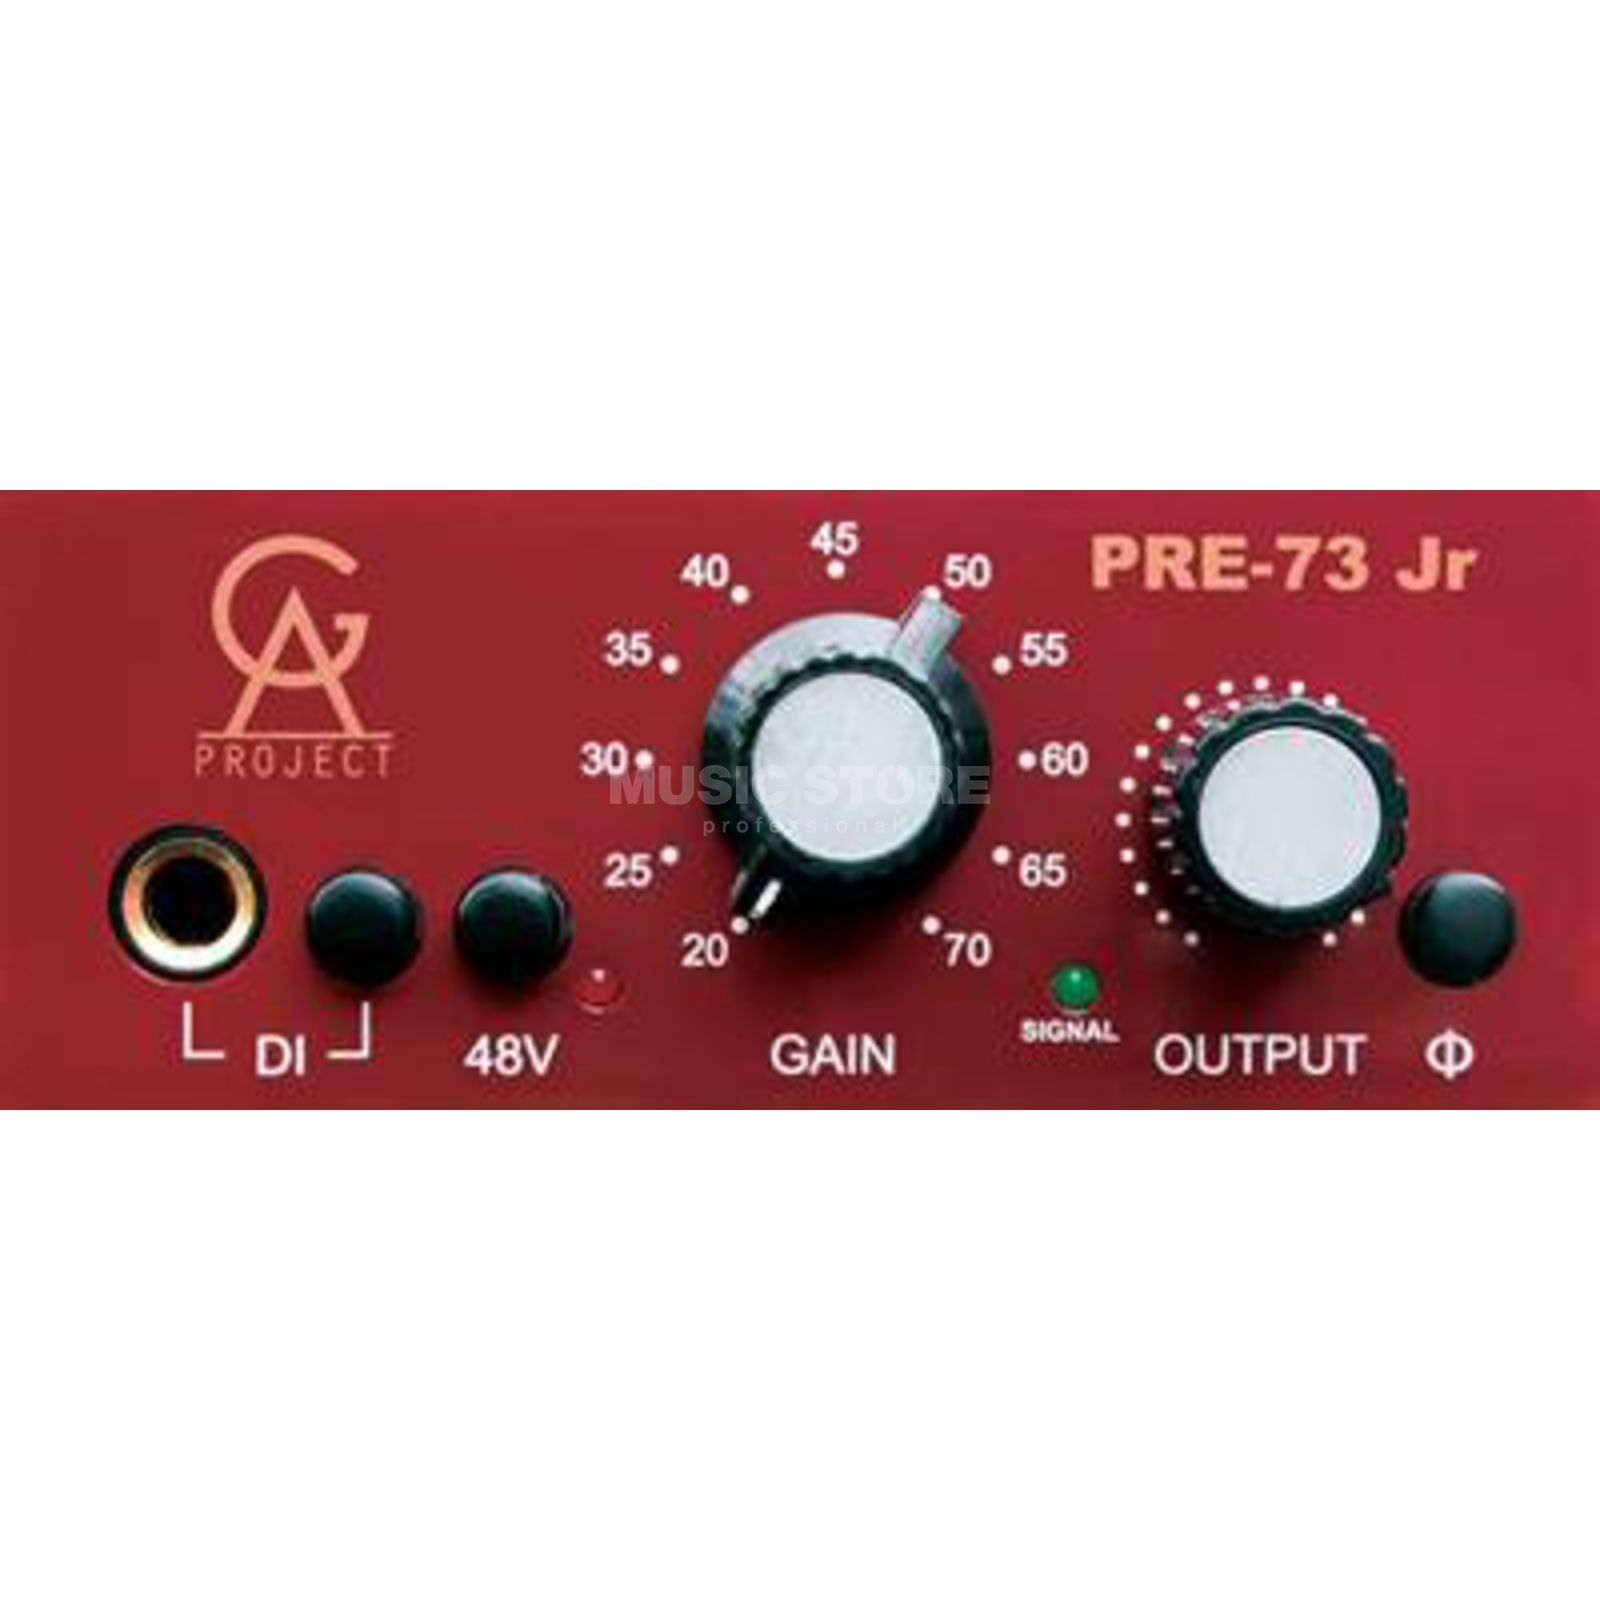 Golden Age Project PRE-73 Jr. Mic/Line Preamp  Produktbild